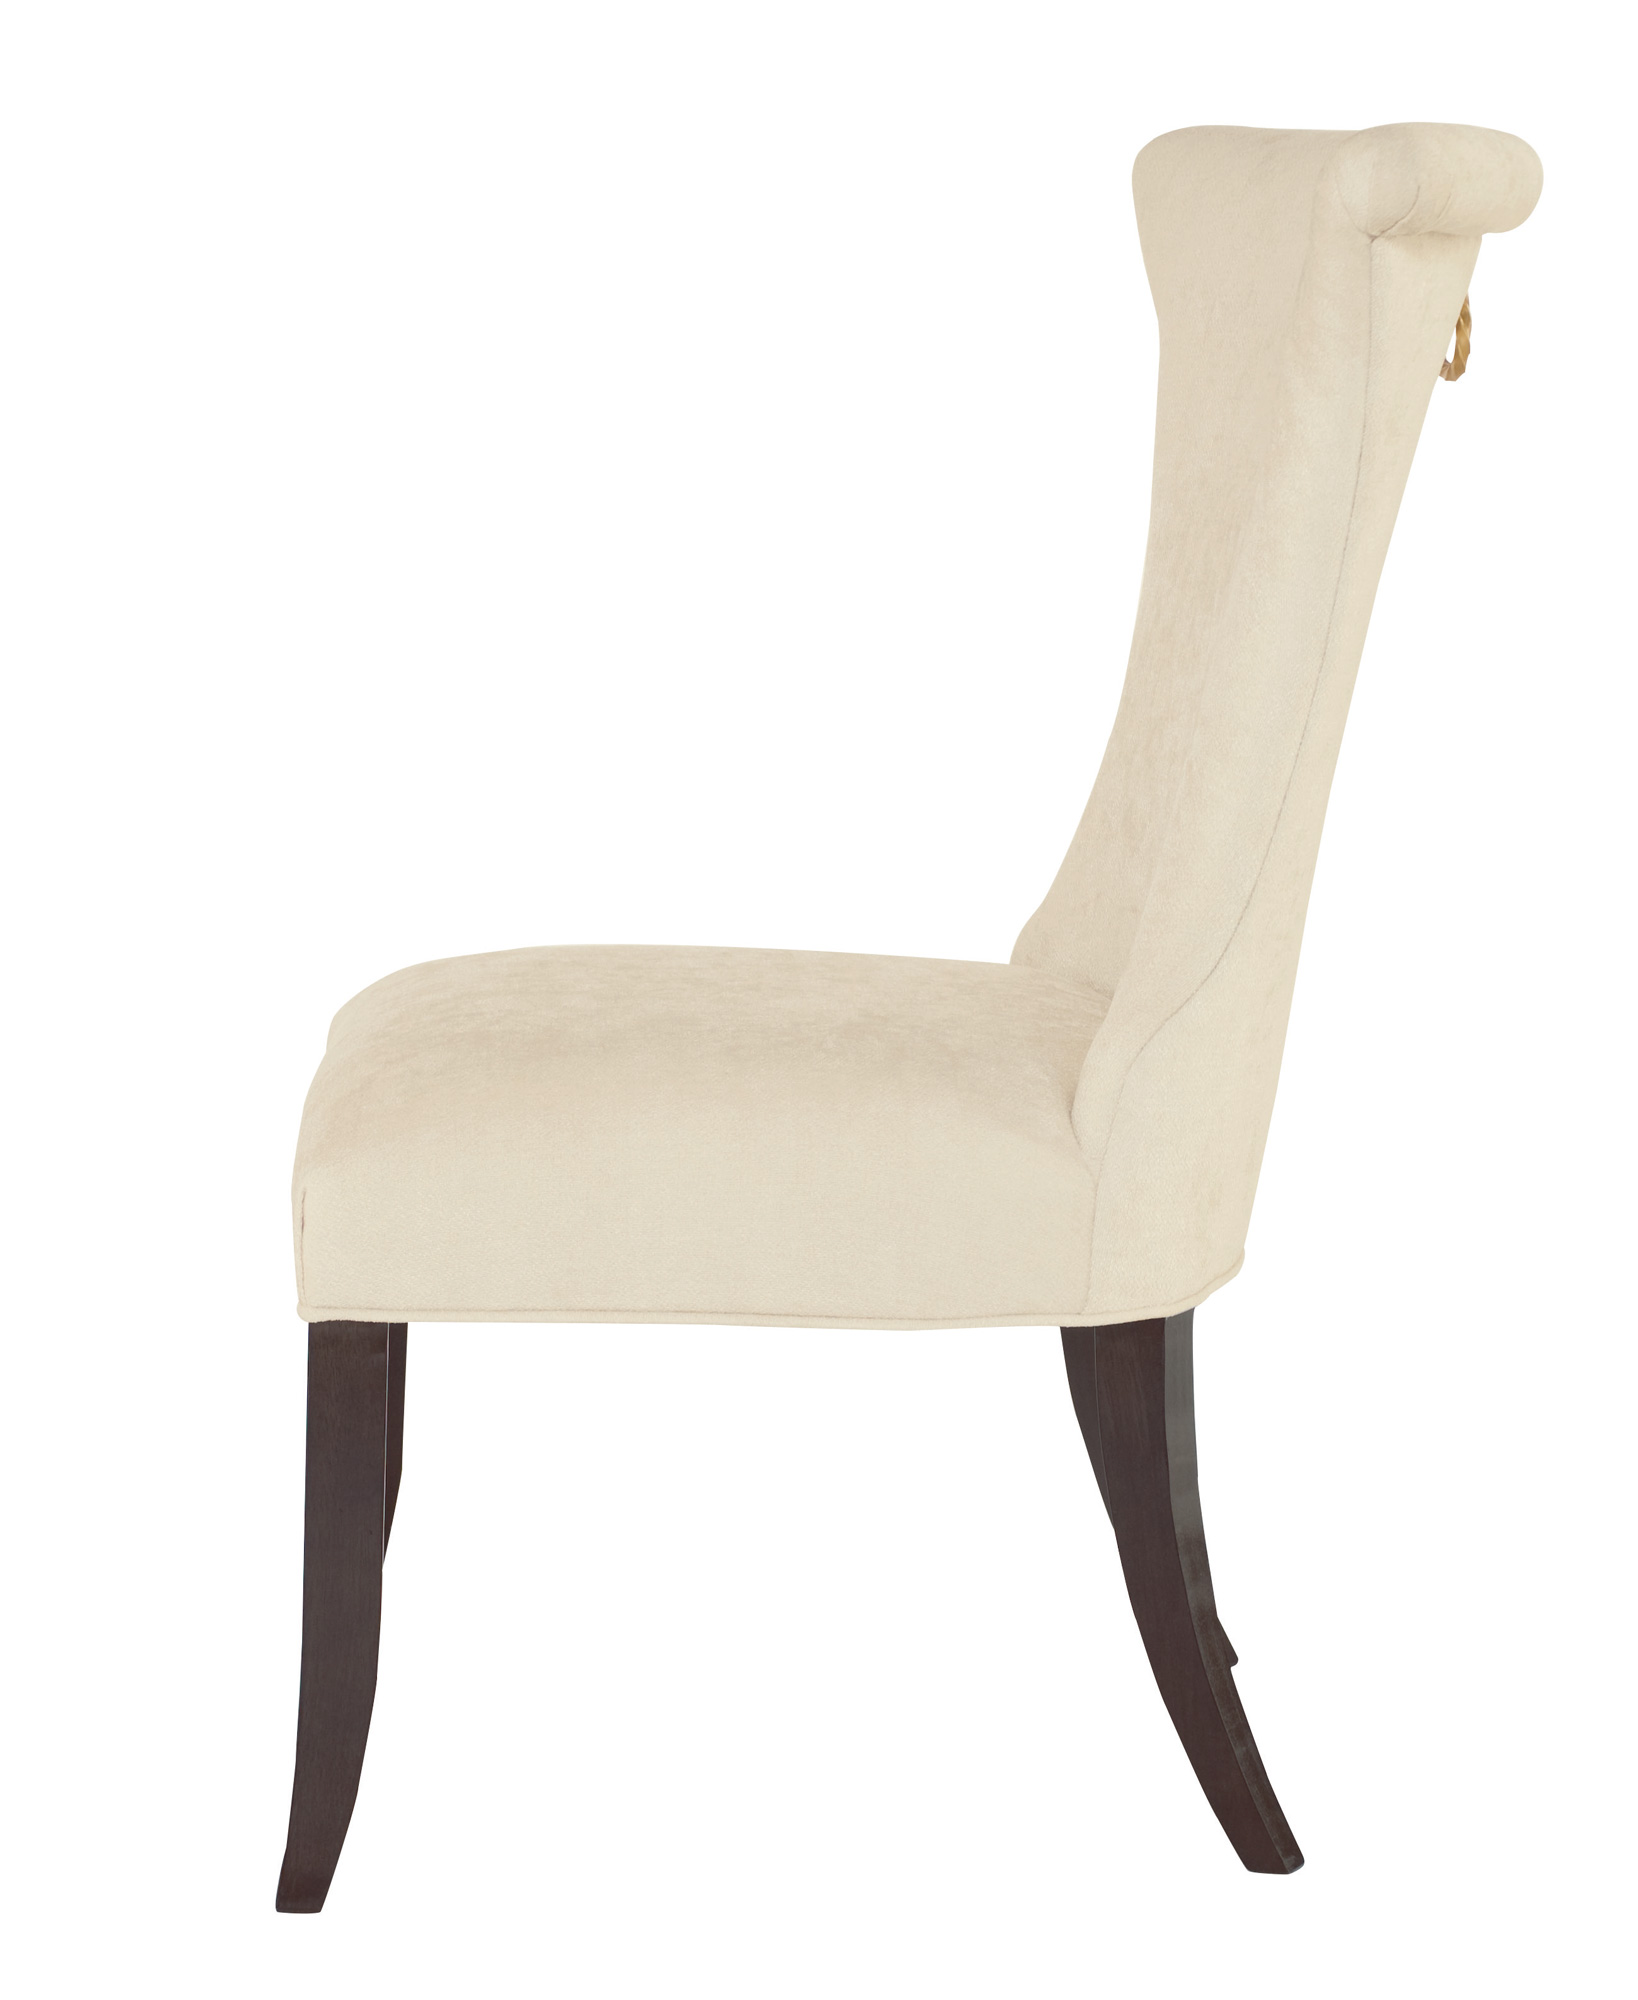 Canadian Furniture Websites Side Chair Bernhardt